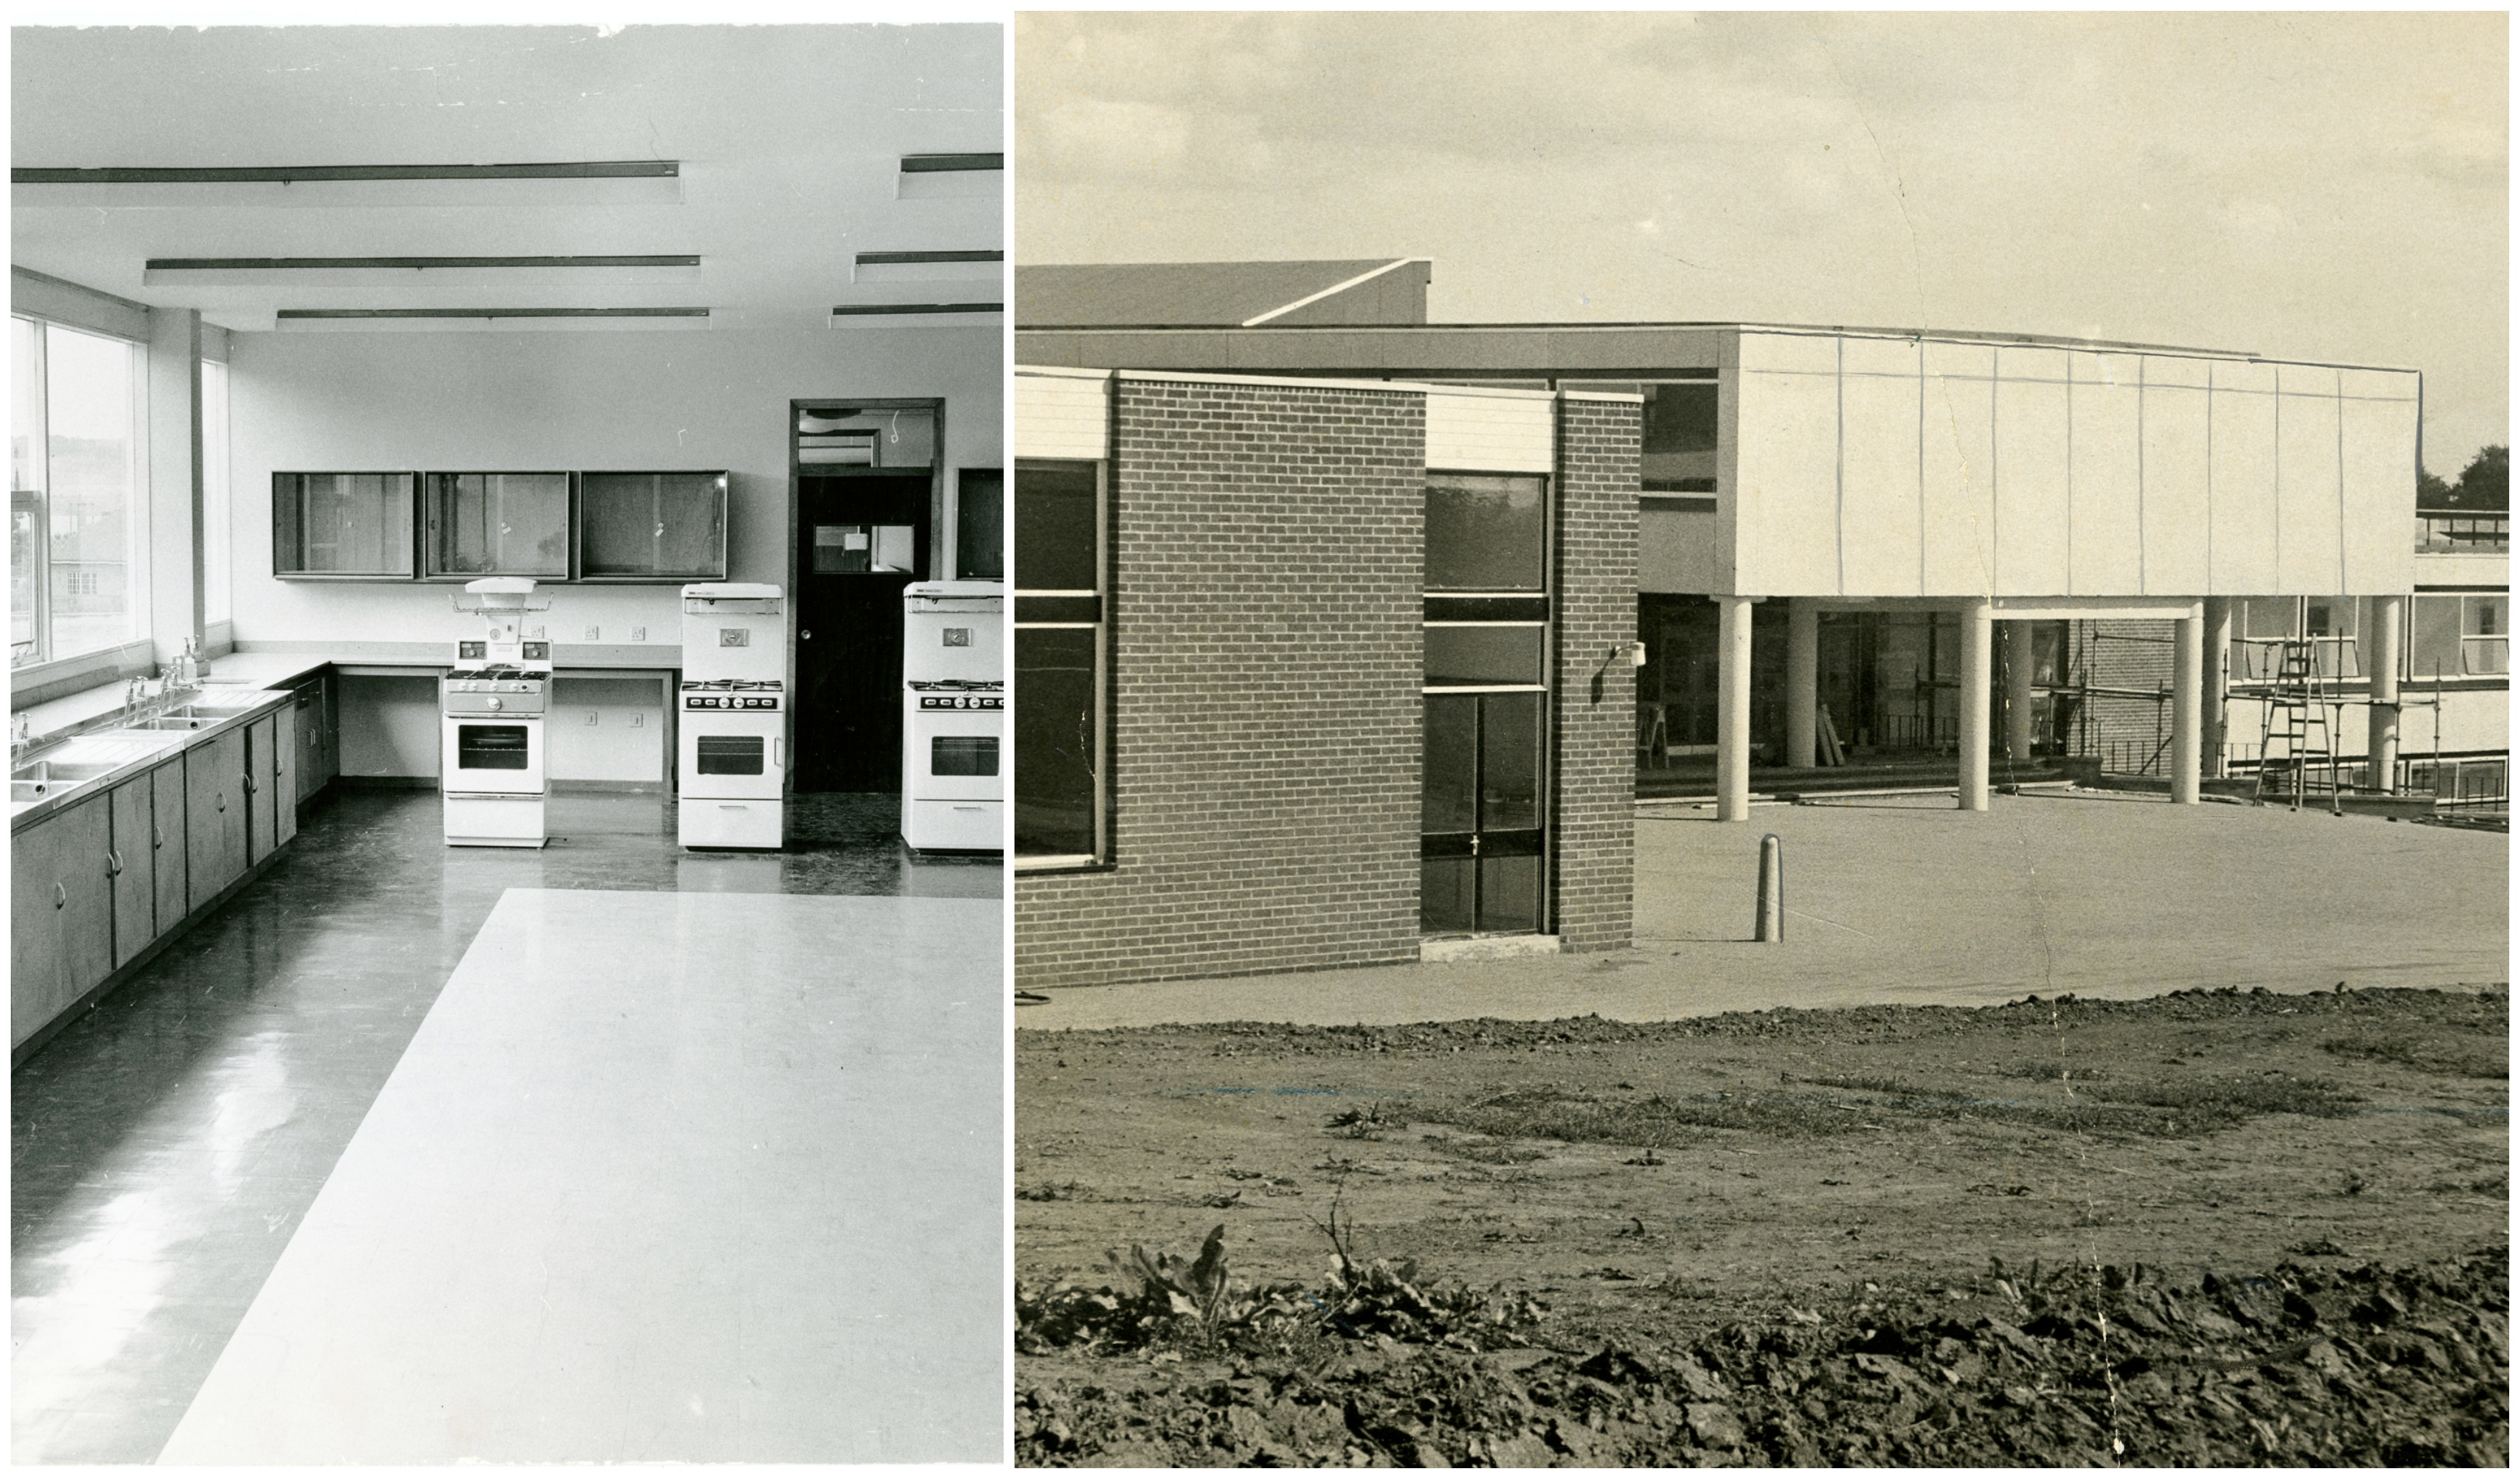 Craigie High School has been serving the communities of Craigiebank, Douglas and Mid-Craigie in the east of the city since it opened in August 1970.